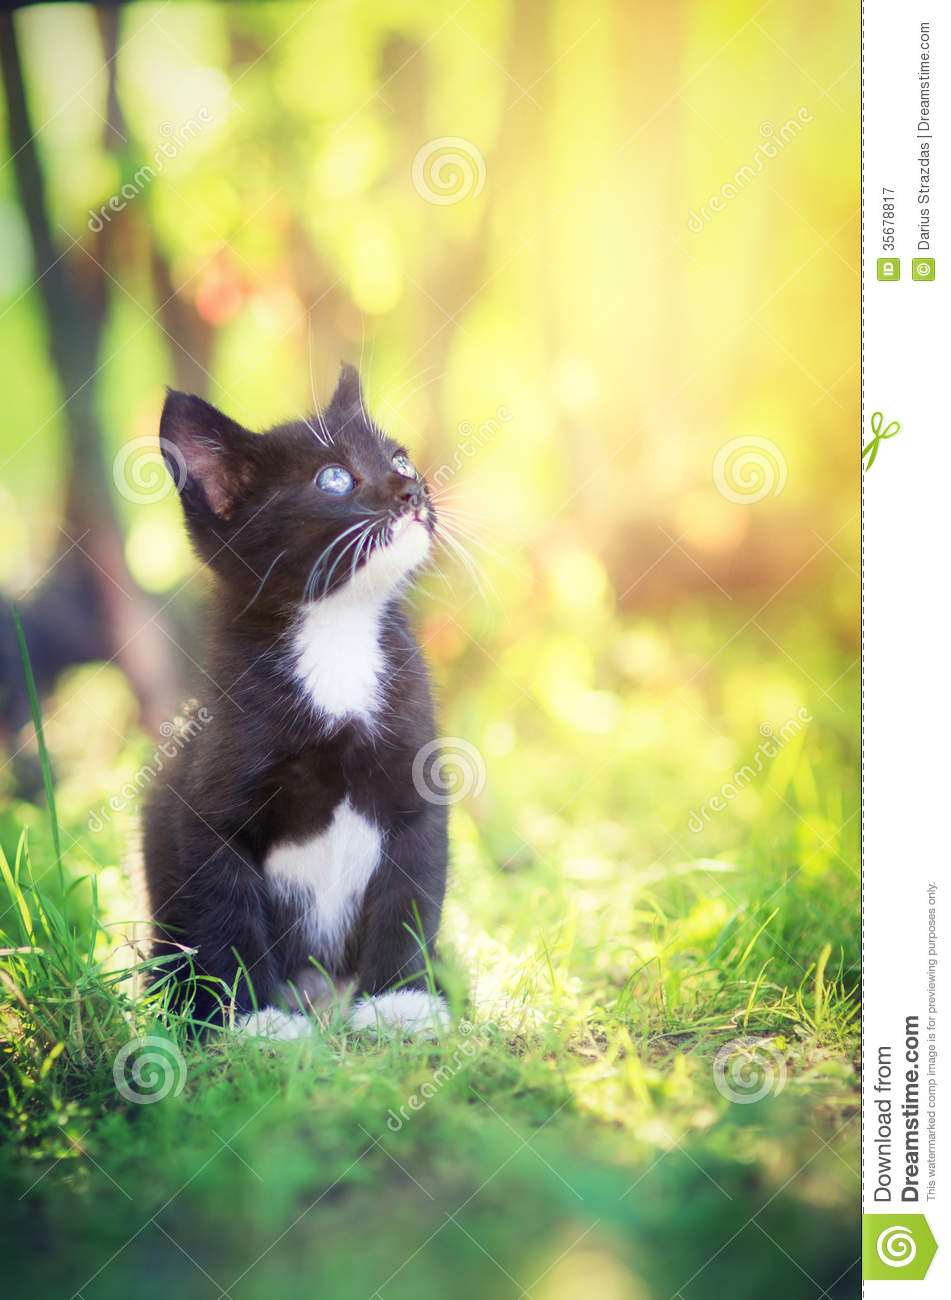 kitten bathed in sunlight royalty free stock photography